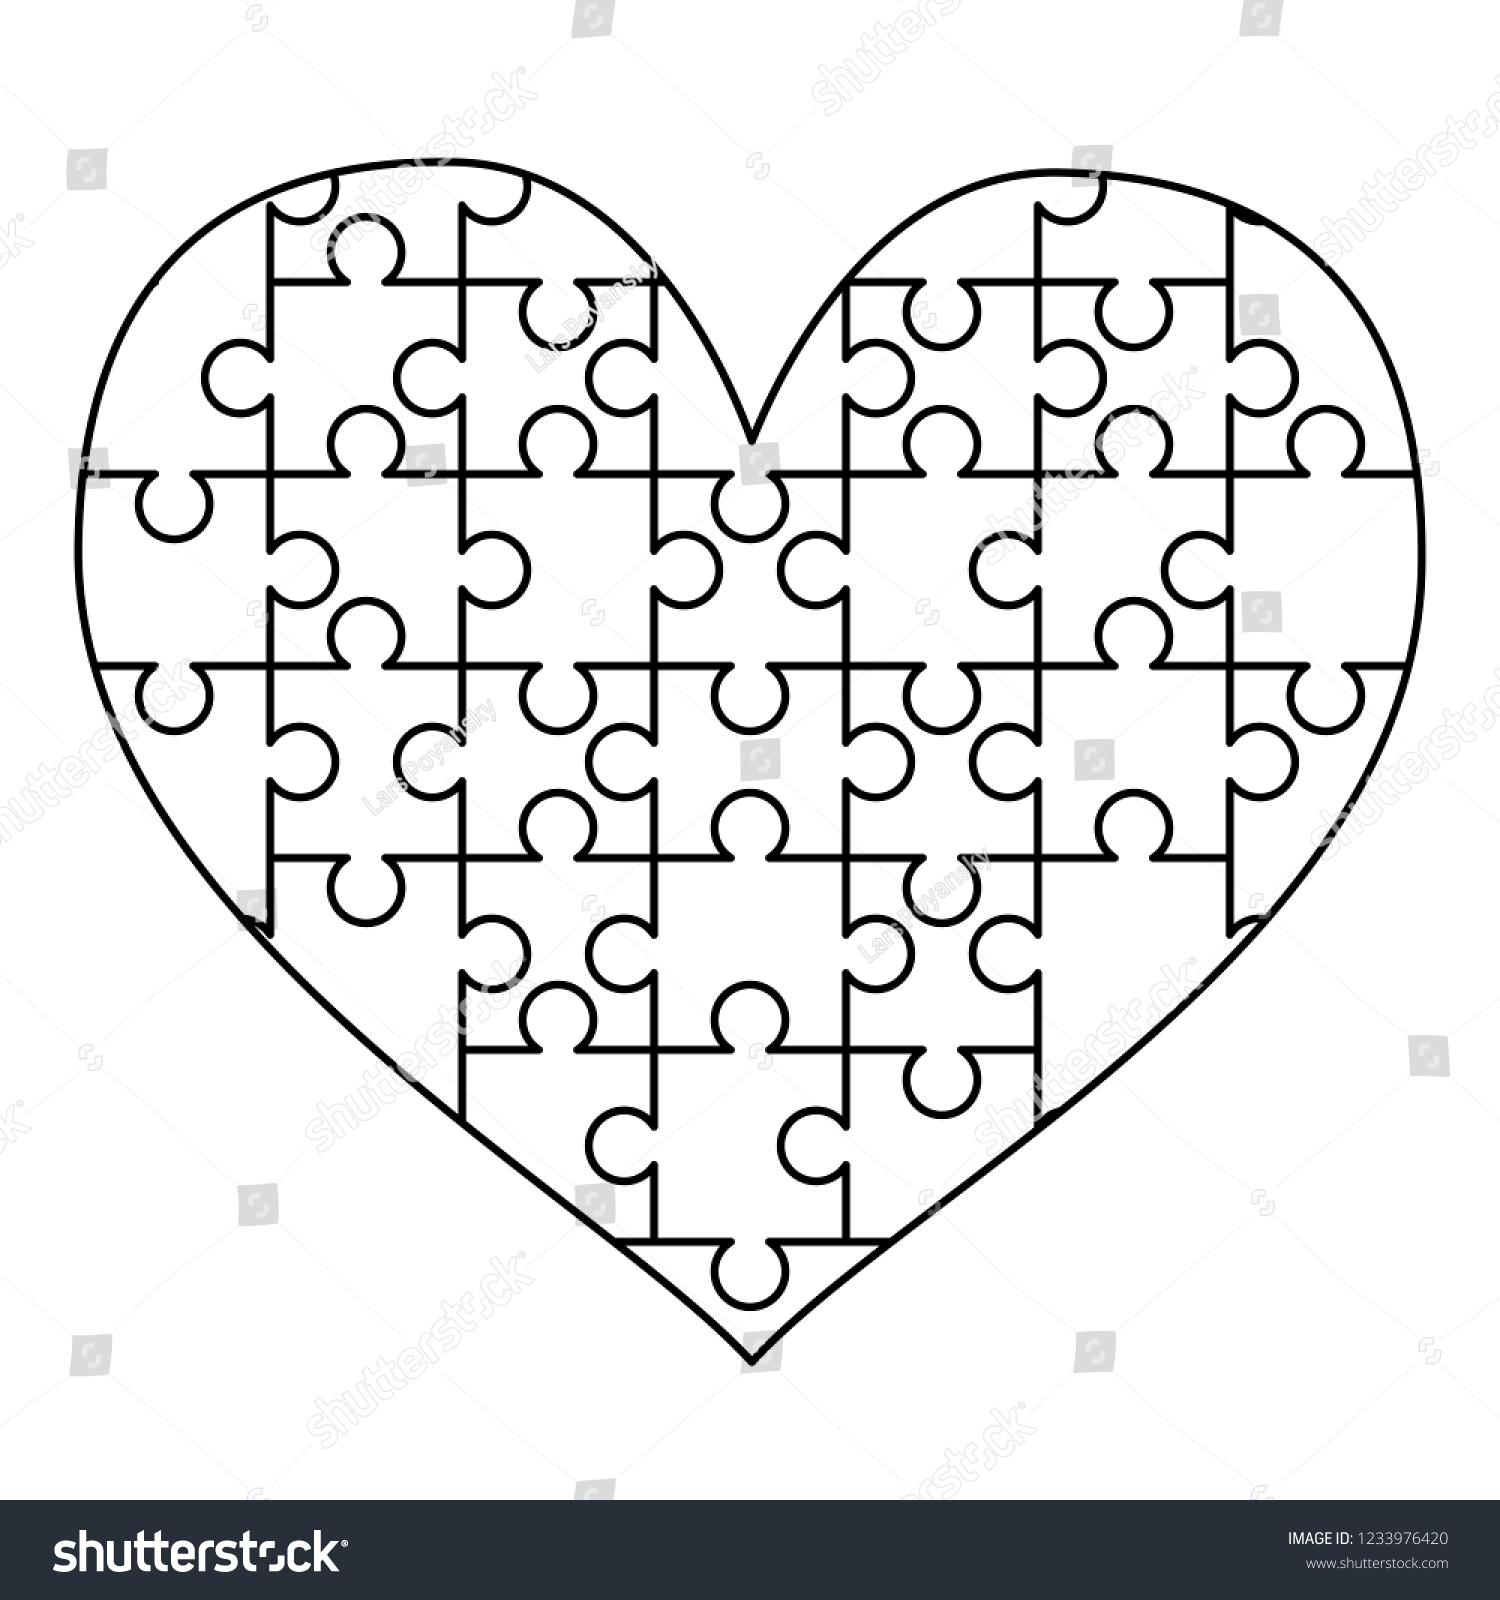 Royalty Free Stock Illustration Of White Puzzles Pieces Arranged - Printable Puzzle Heart